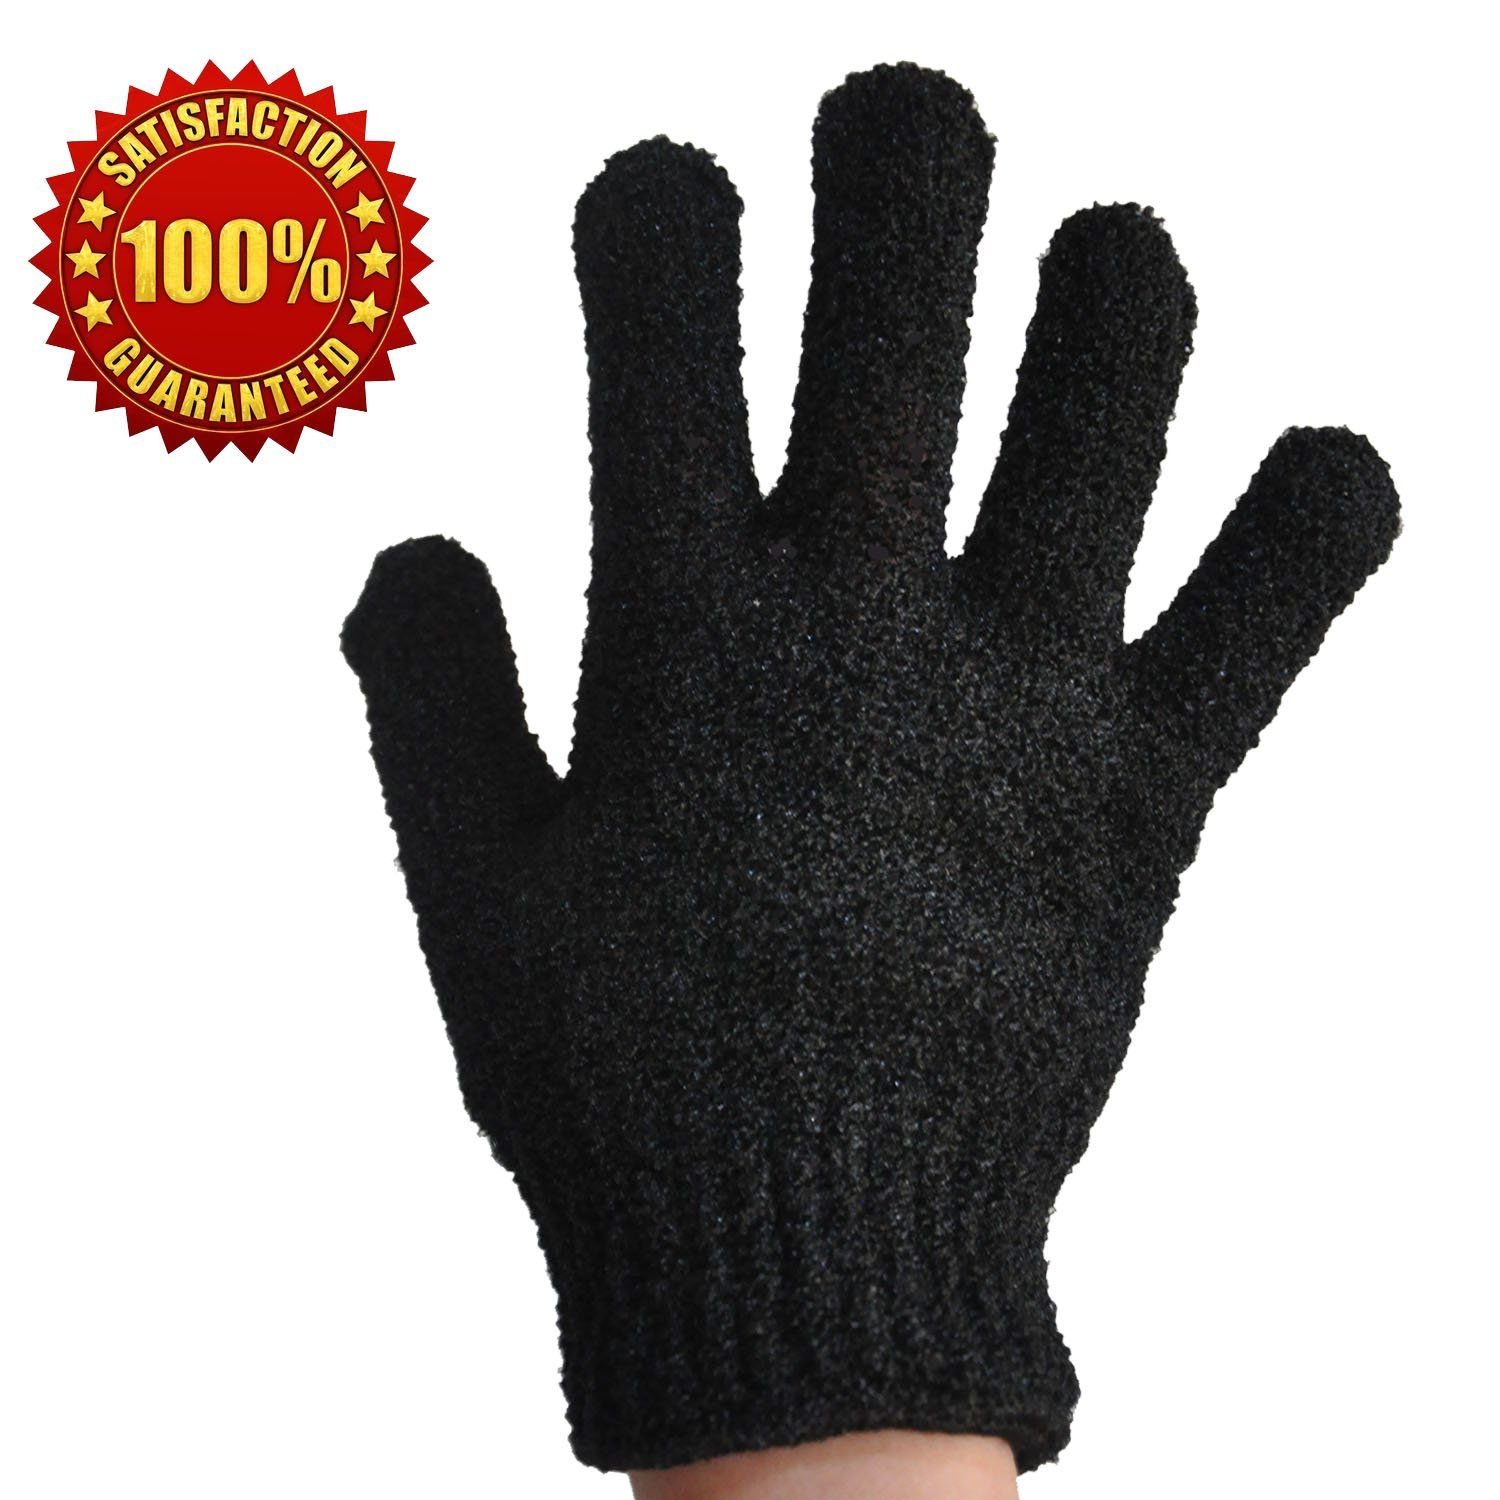 Heat Resistant Glove For Hair Styling Best Gloves For Curling Flat Iron And Curling Wand Use Thin Stretchy Ma Wand Curls Heat Resistant Gloves Best Gloves